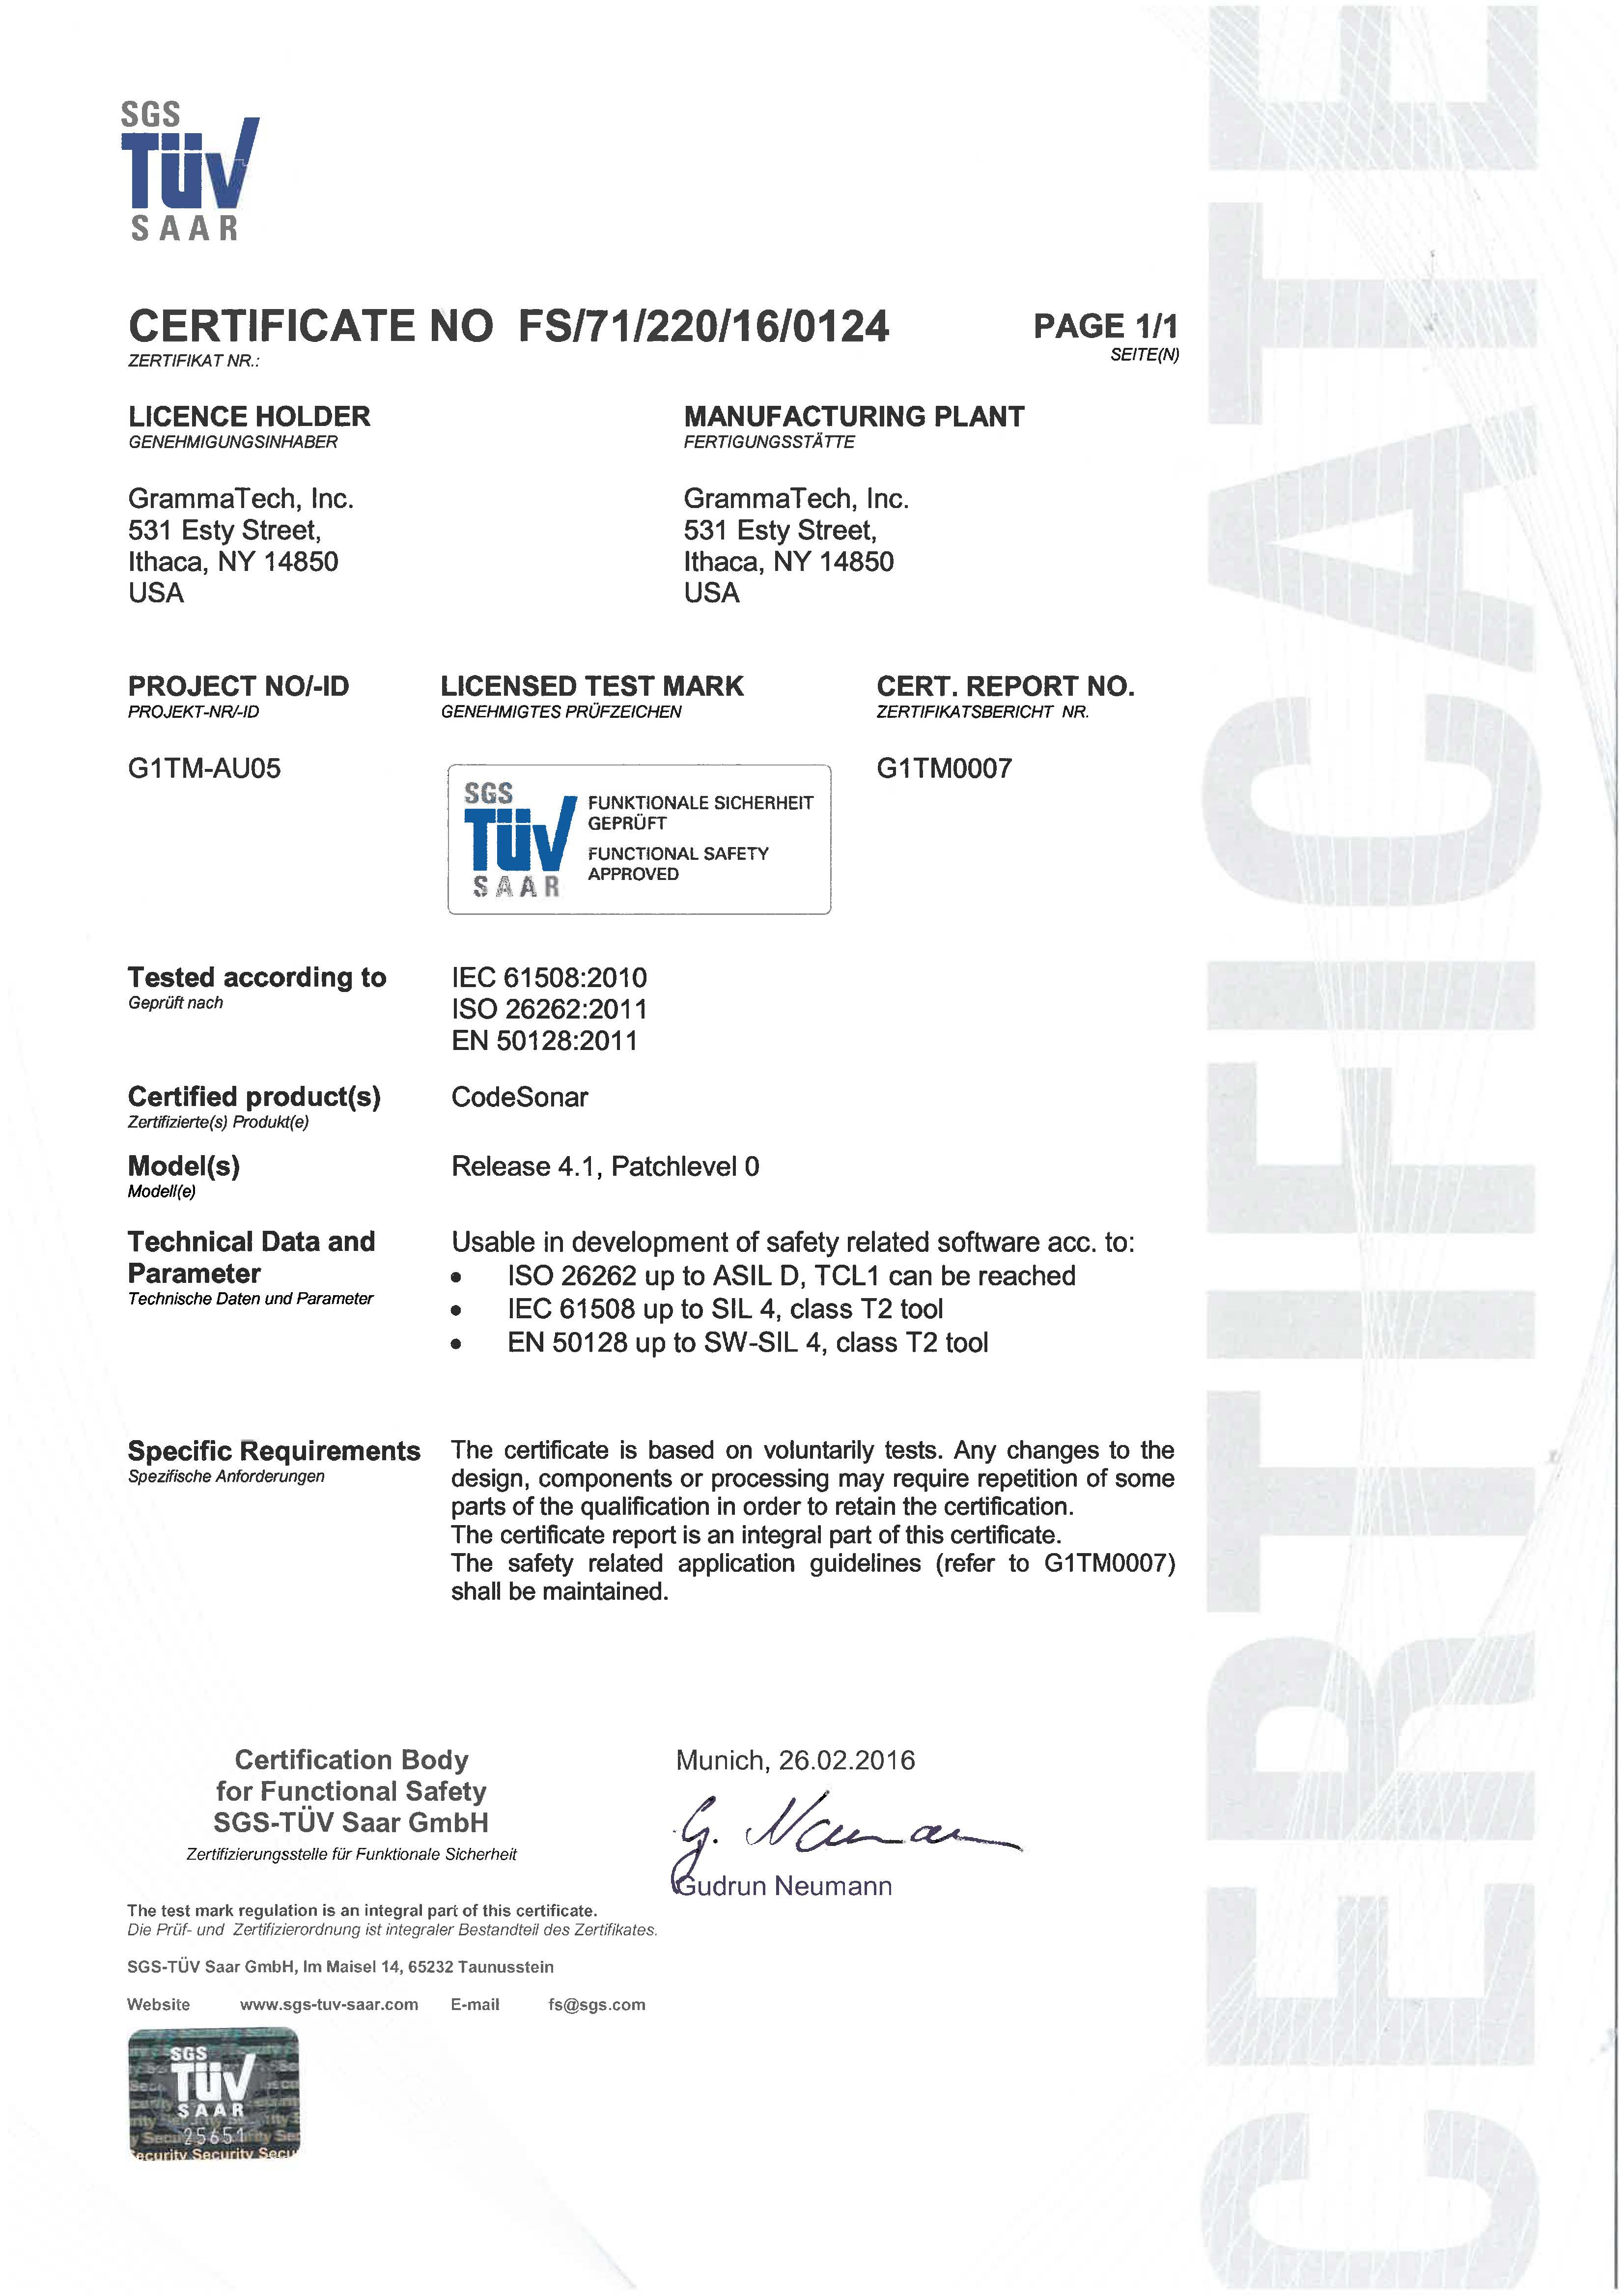 CodeSonar 4.1 Certified for Use in Developing Safety-Critical Software